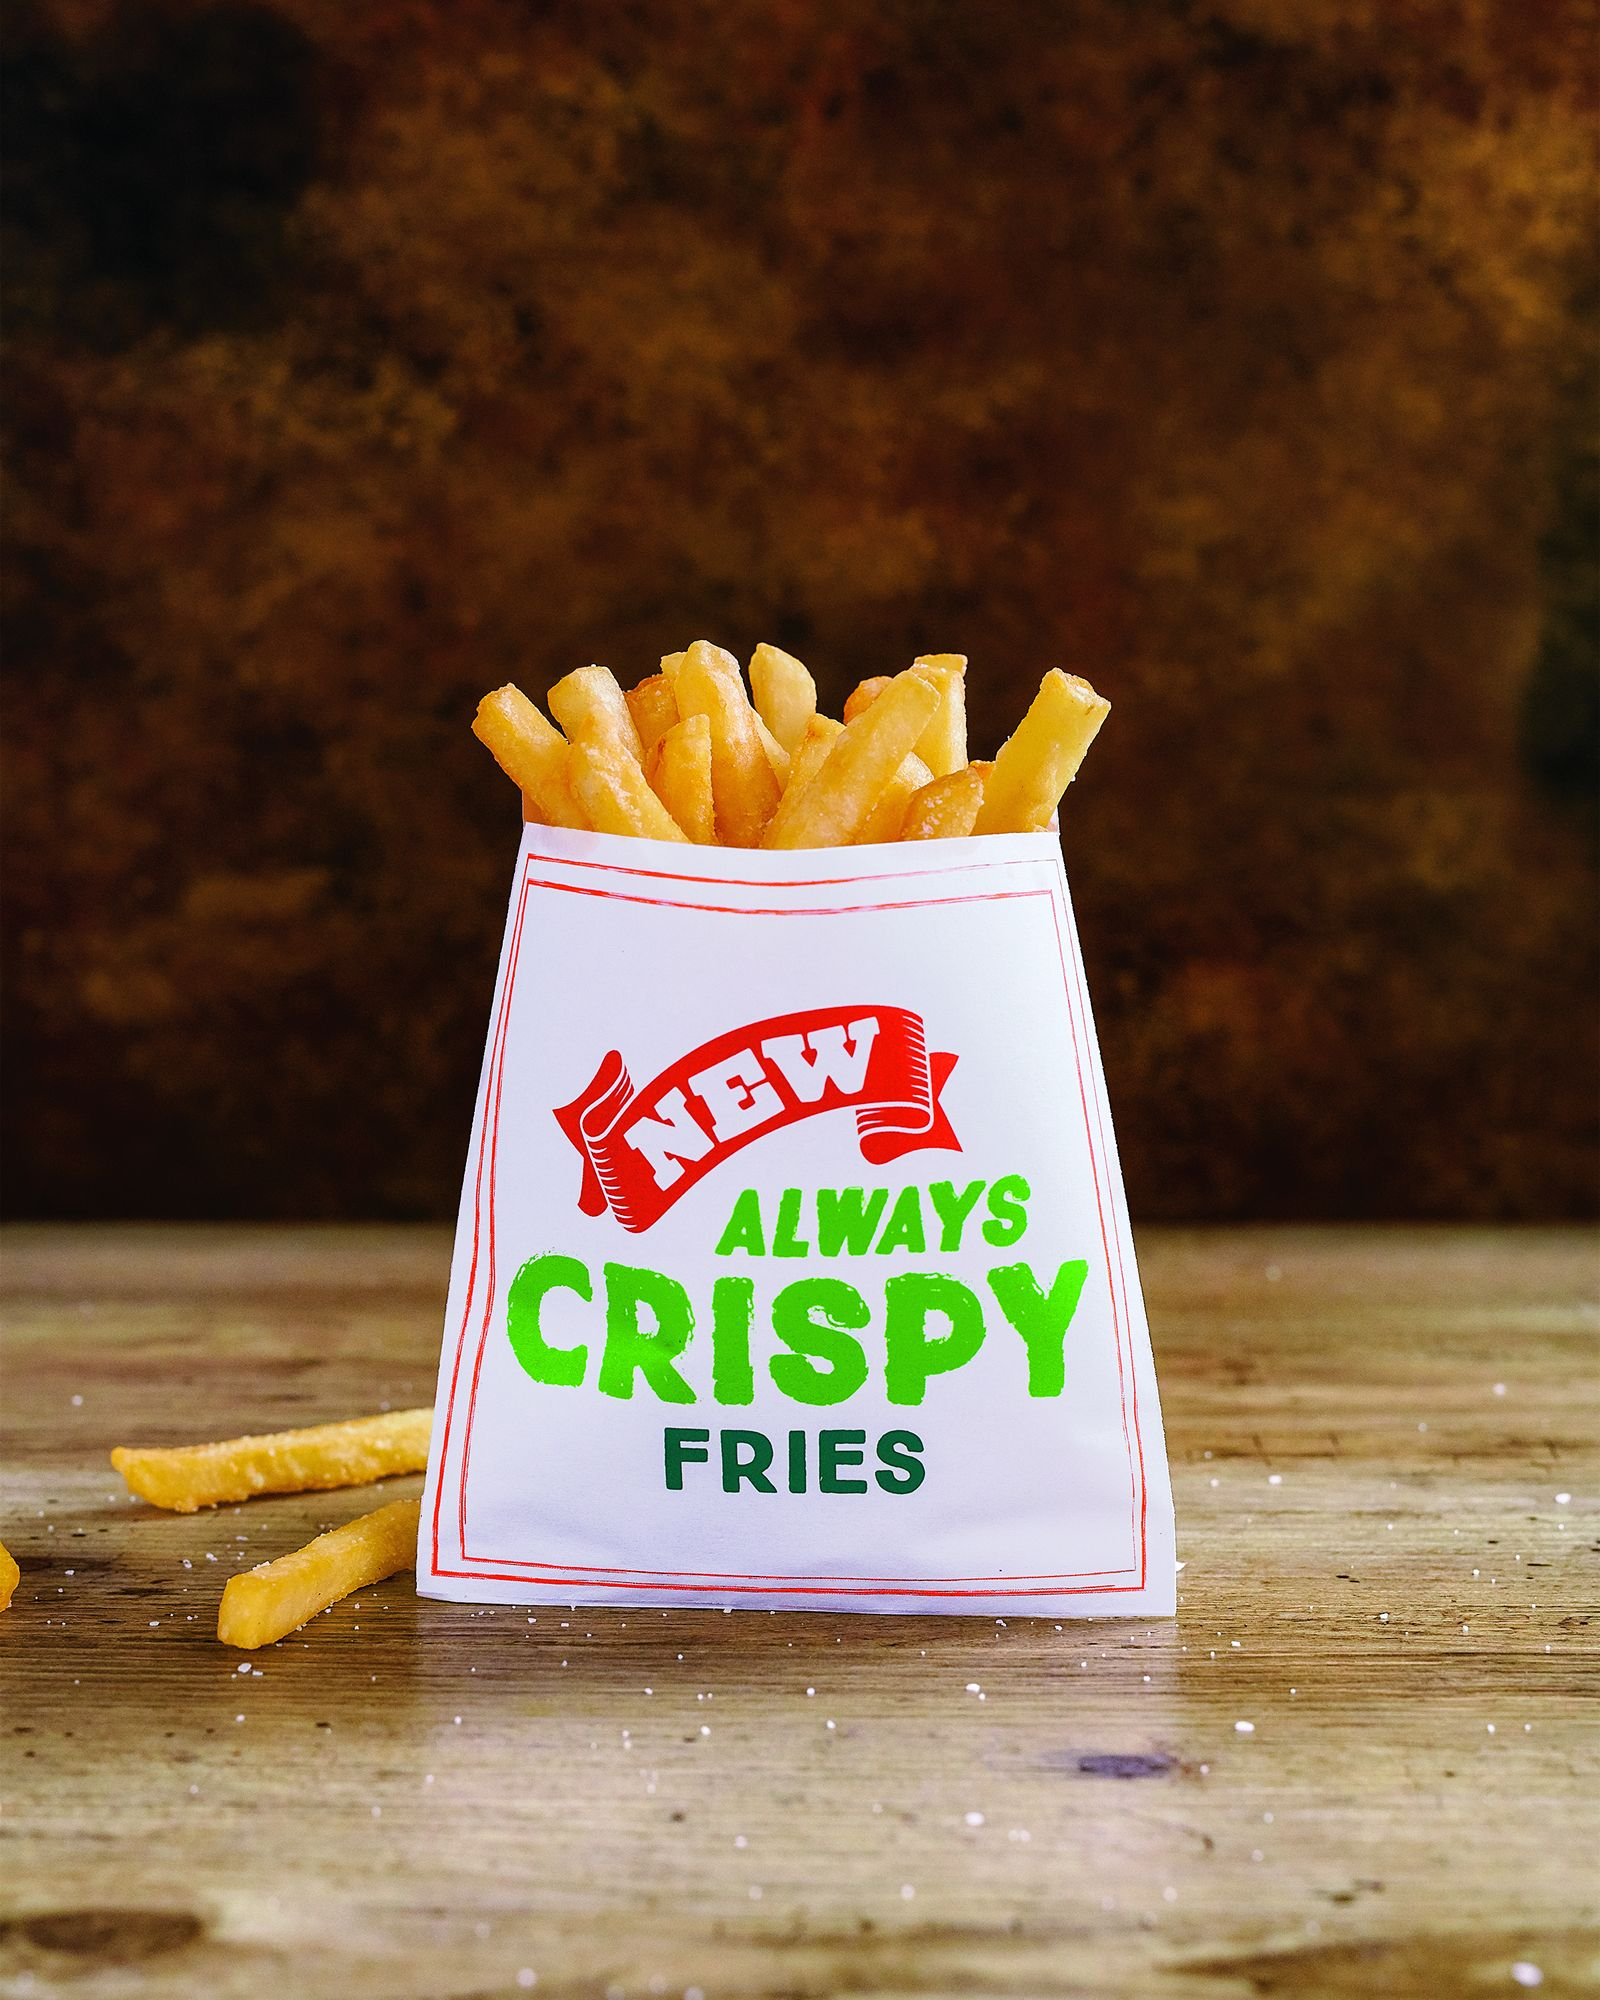 Farmer Boys has announced another chance for guests to score free fries! Visit participating locations on Friday, February 8 from 2-5pm to receive a free order of their new, 'always crispy' fries with purchase.